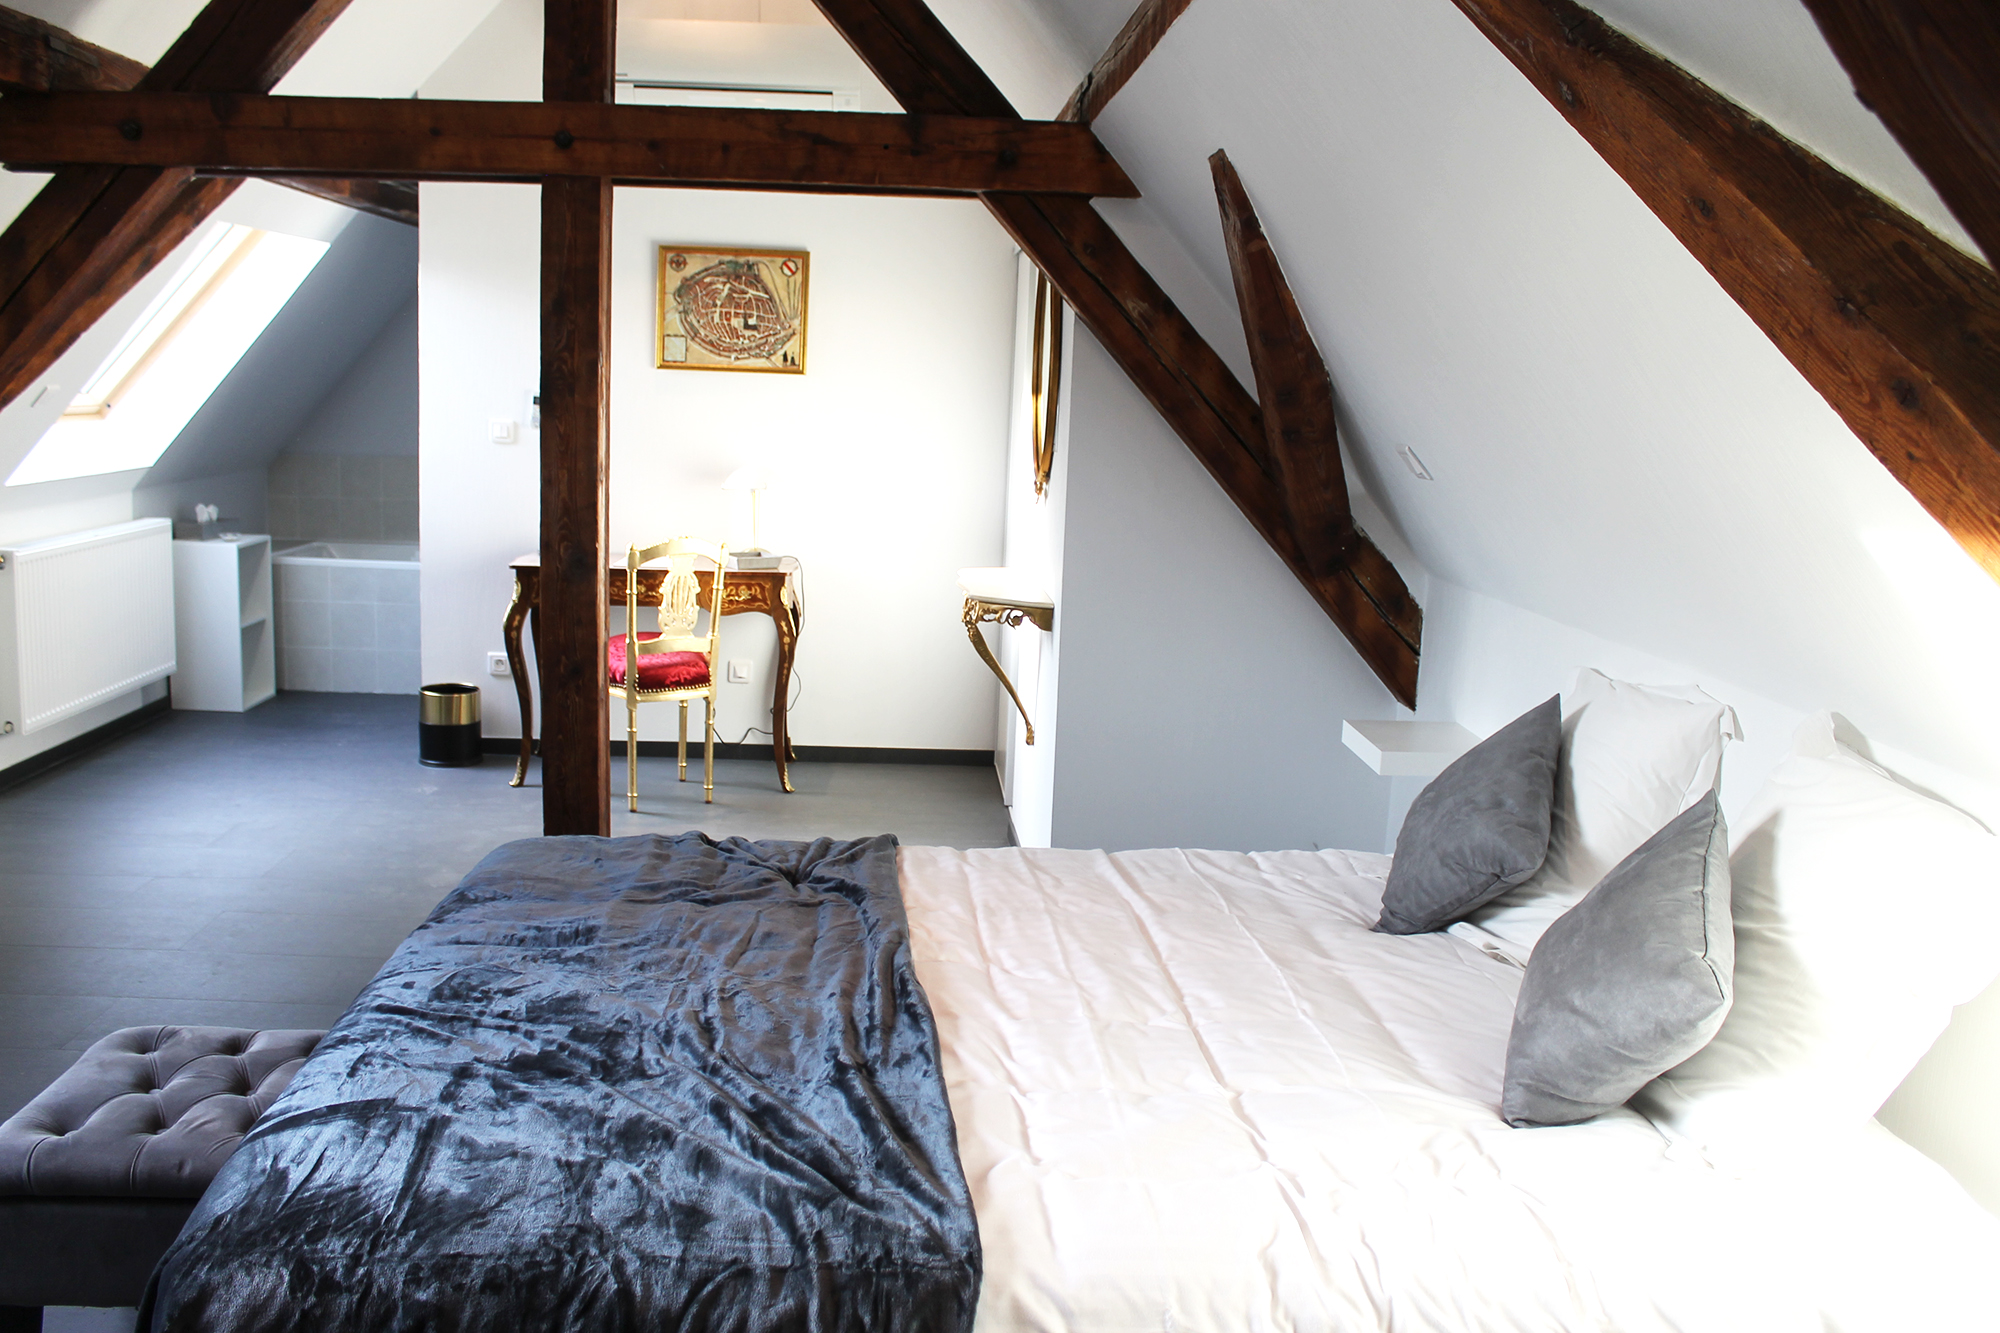 Demeure-M-Strasbourg-Anne-sophie-Moussard-mode-chambre-hote-hotel